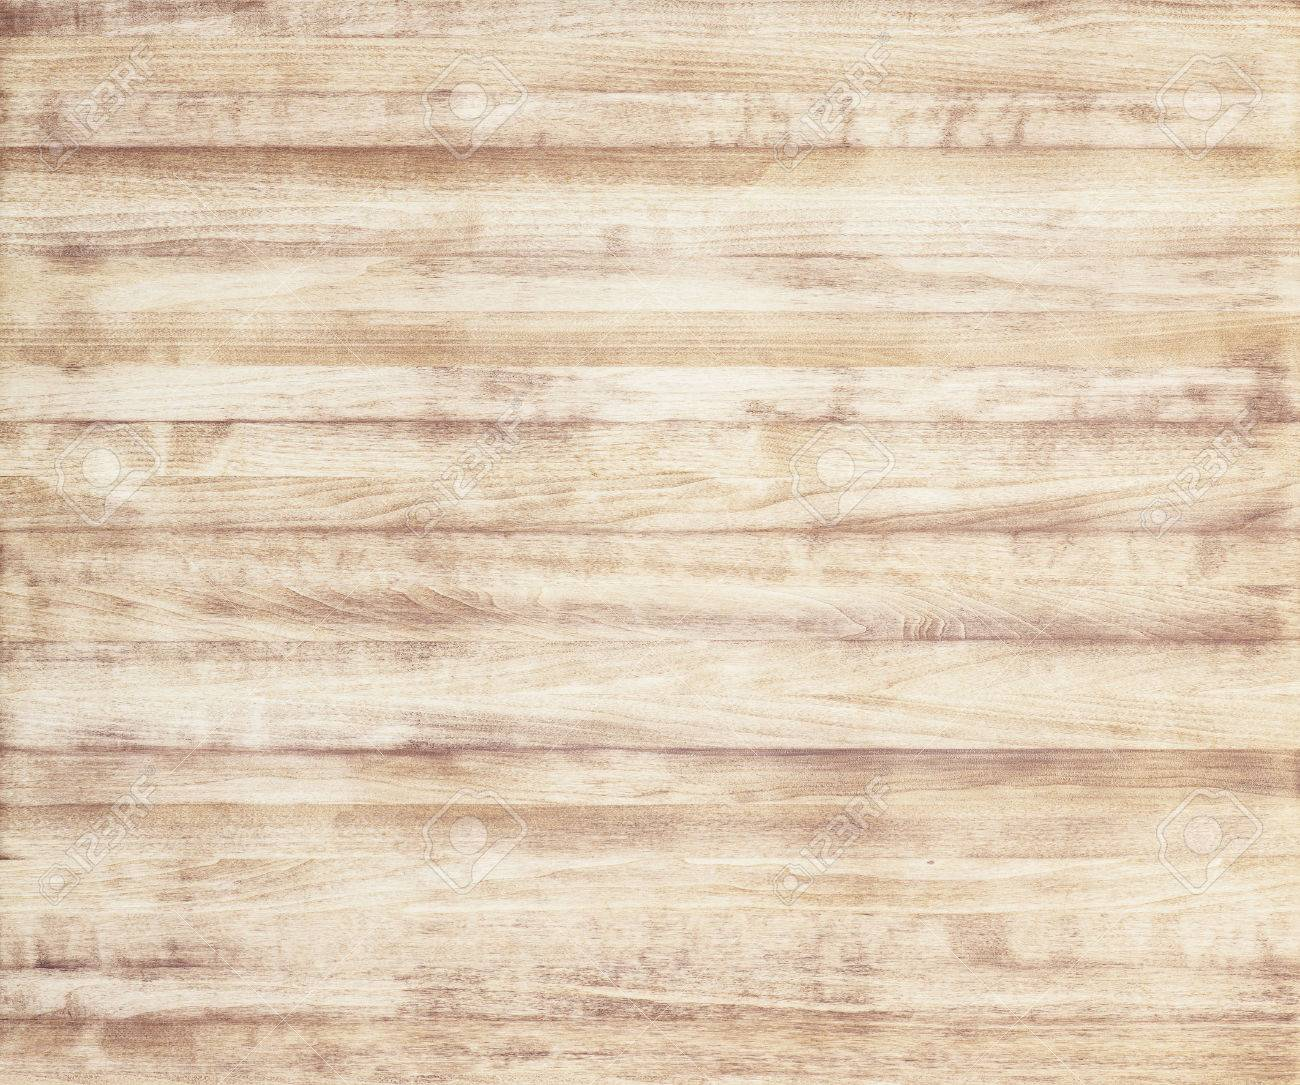 Wooden texture, light brown wood background Stock Photo - 63825611